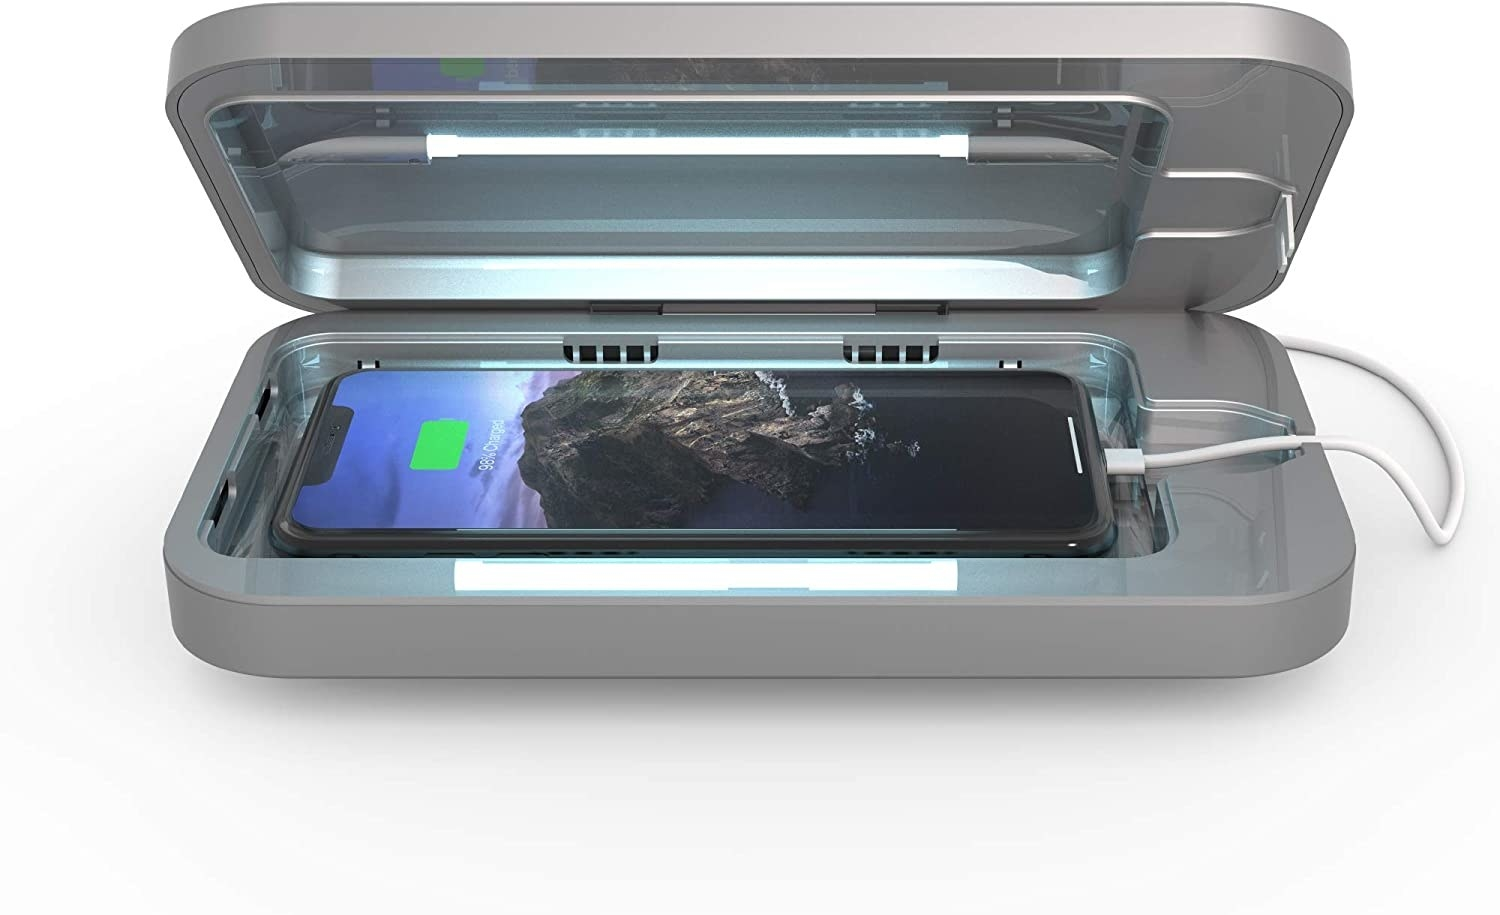 the phonesoap open with a phone neatly fitting into the cavity with a cord leading out of it to charge